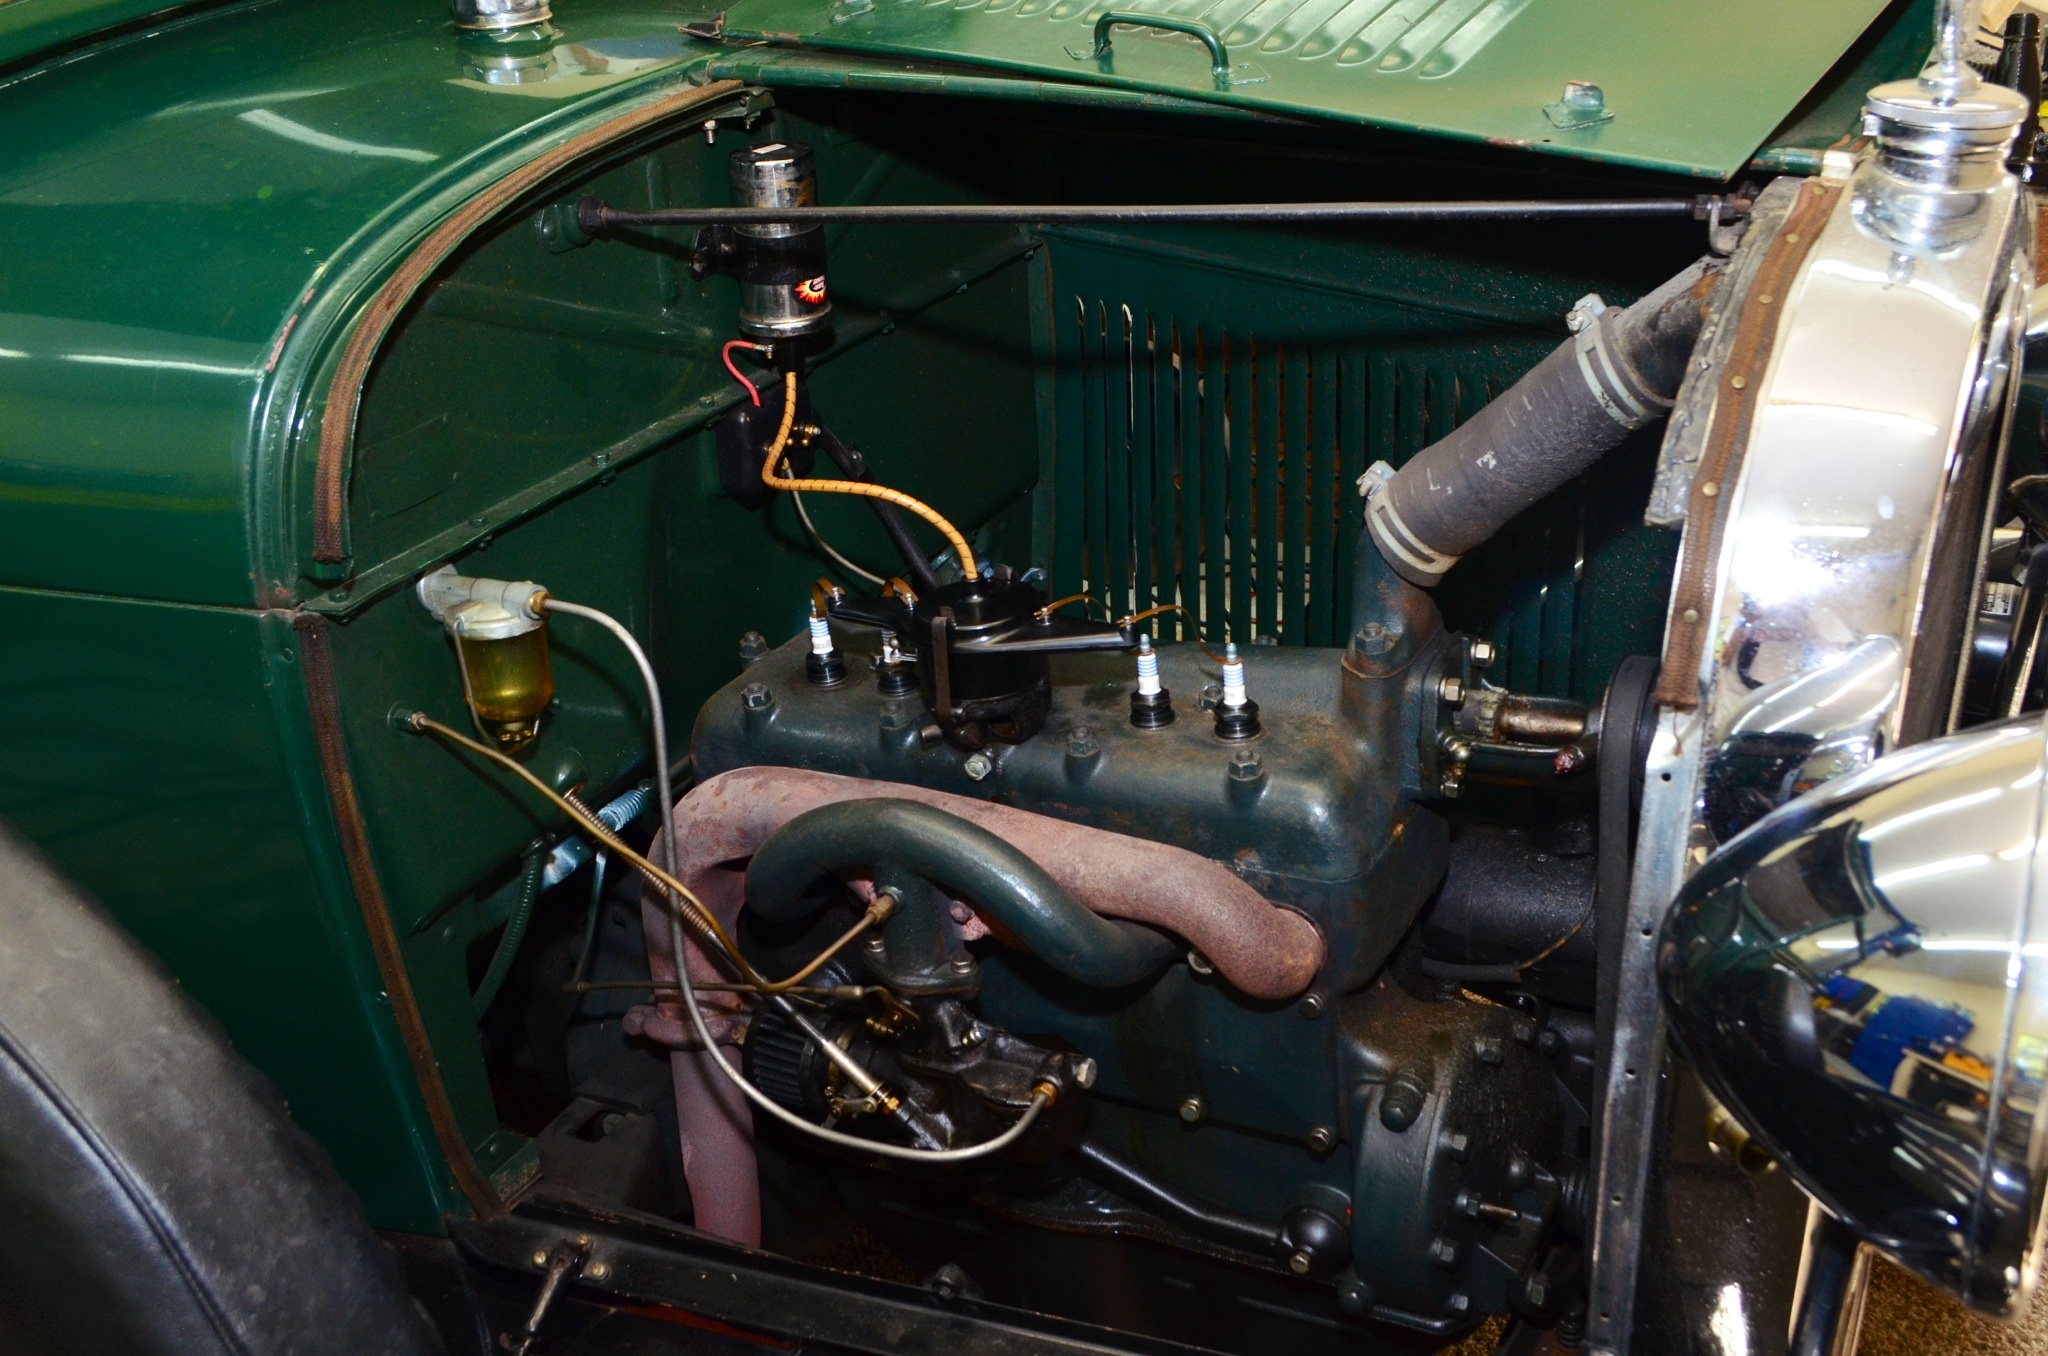 Delco Remy Wiring Diagram Ignition Issues Ford Model A Project Car Updates